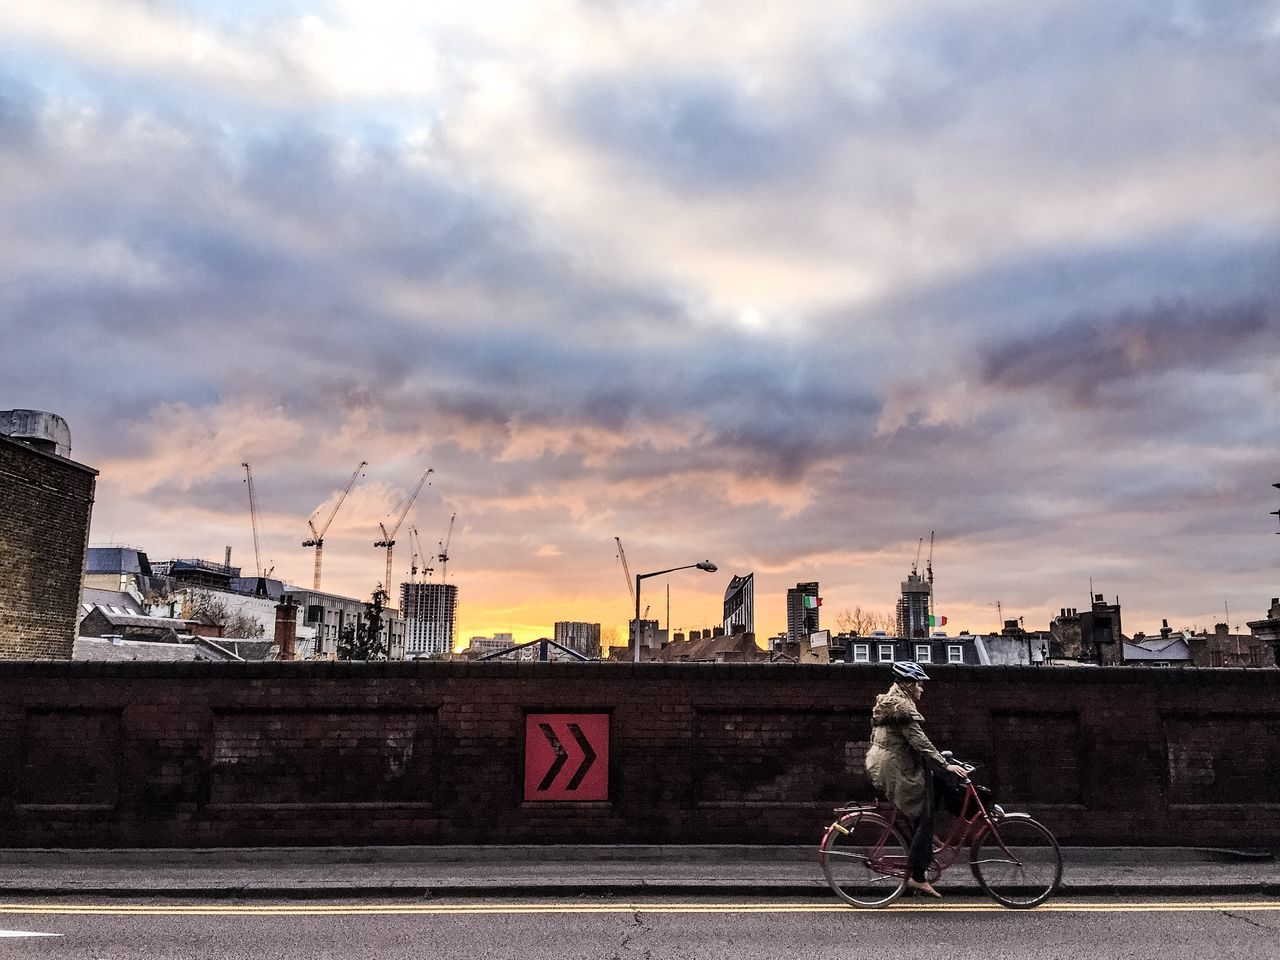 Architecture Building Exterior Built Structure City Cityscape Cloud - Sky Day Dramatic Sky No People Outdoors Sky Sunset Travel Destinations Urban Skyline